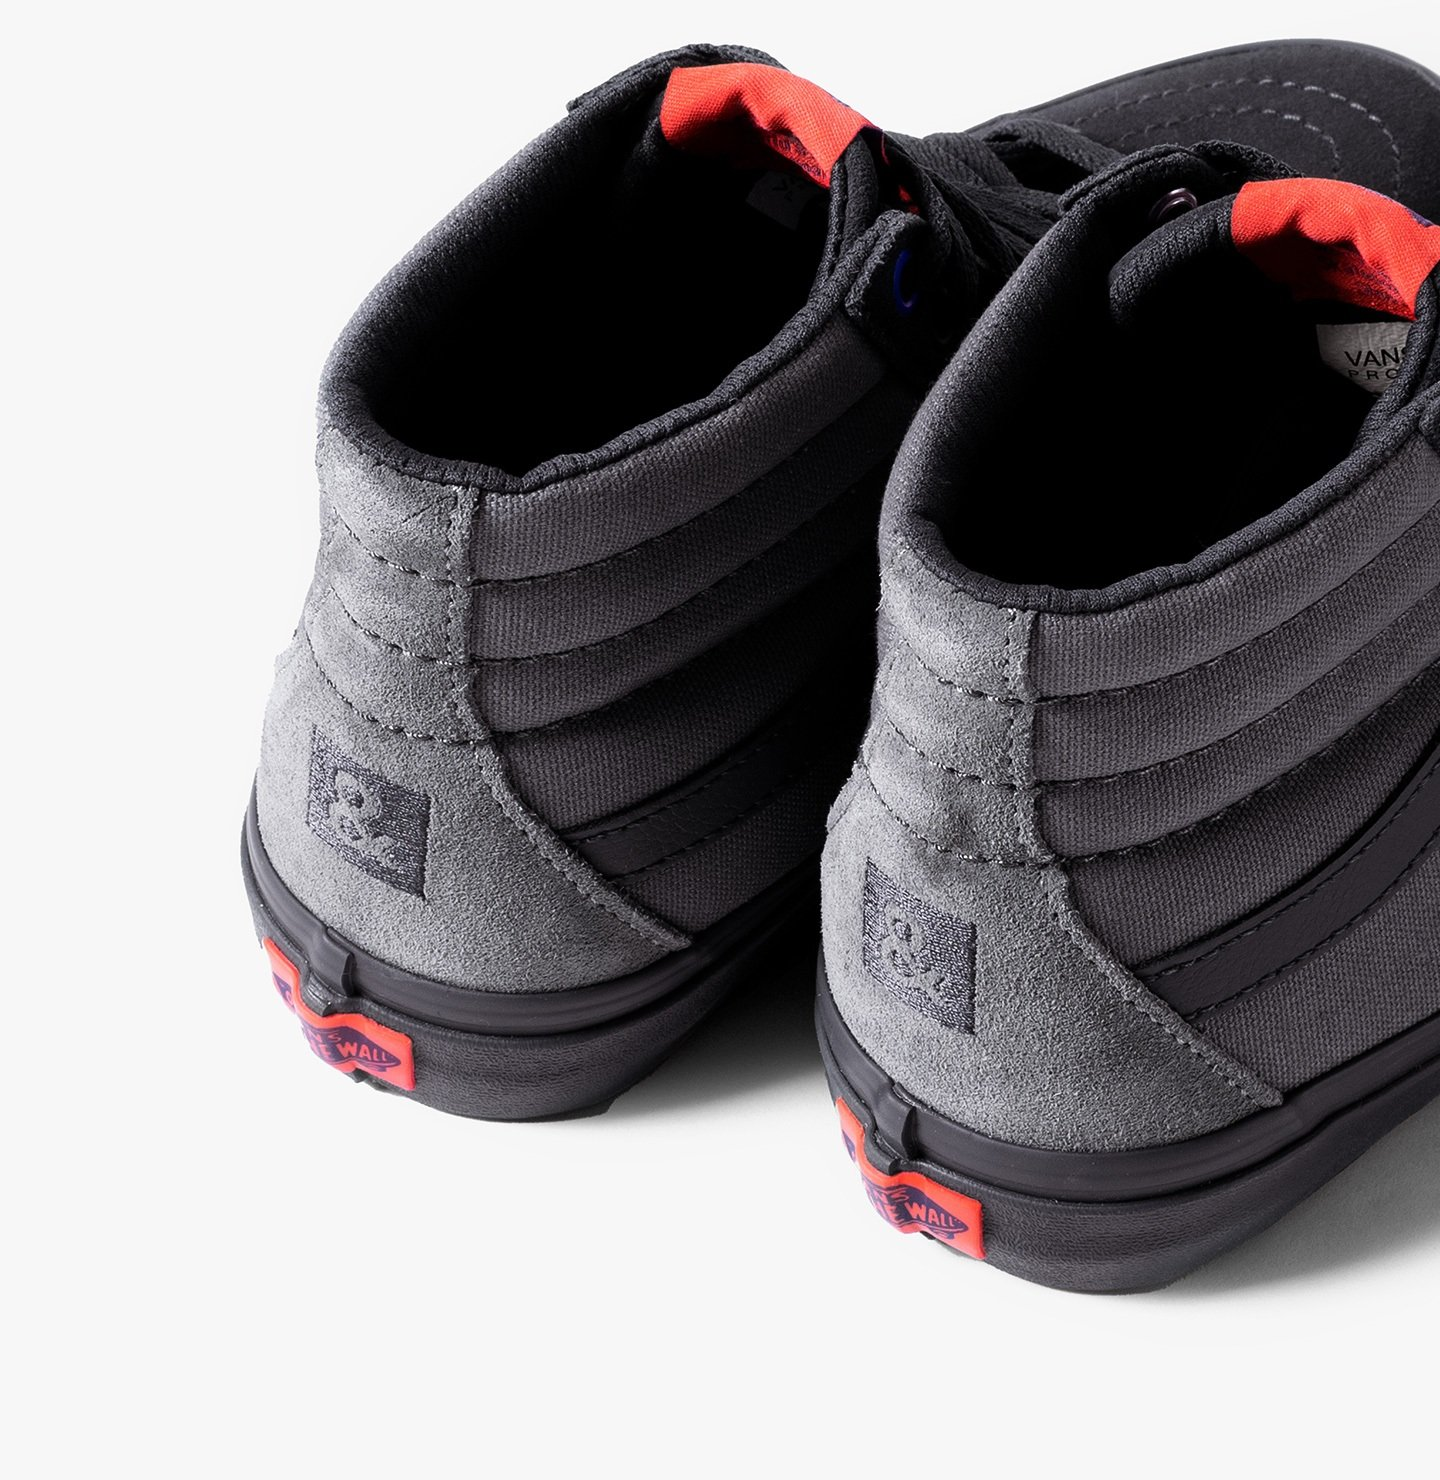 Vulcanized lugged outsole for increased traction